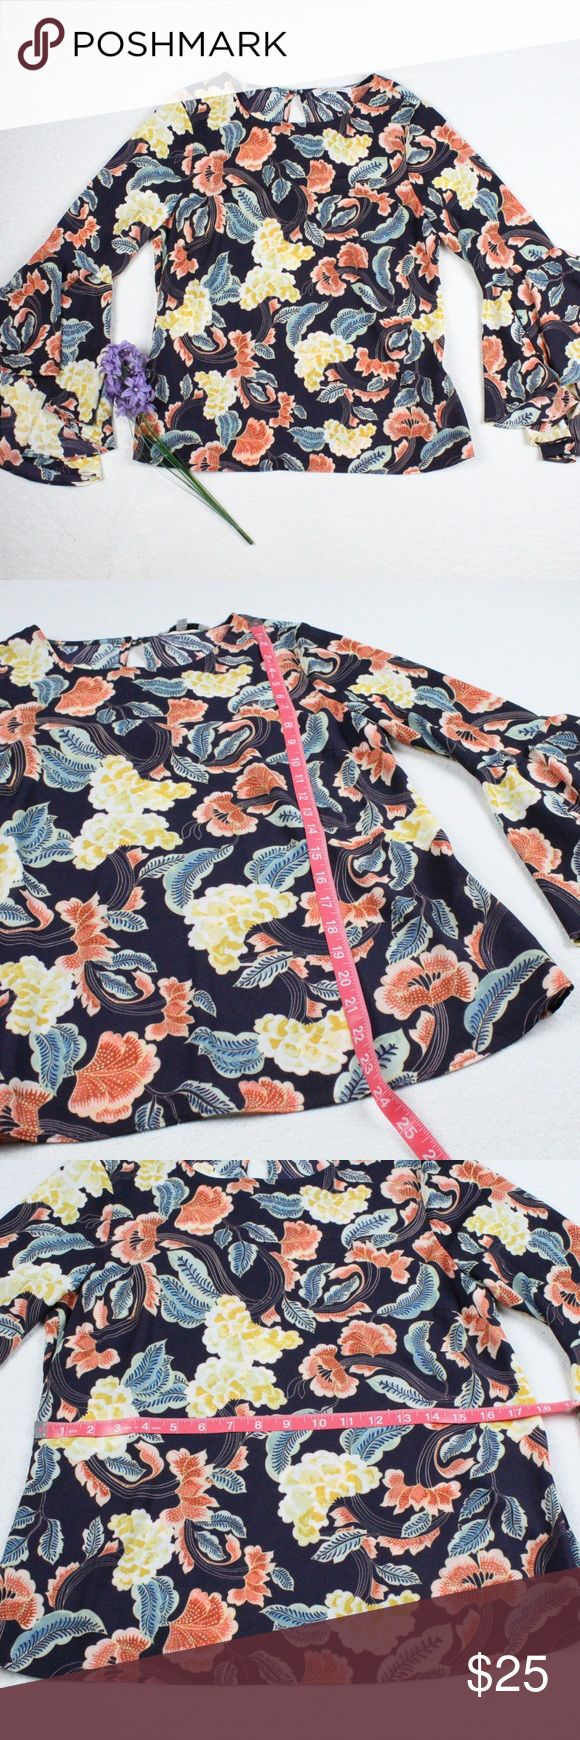 Navy Multicolor Floral Bell Sleeve Loose Blouse Preloved Bell sleeve floral print blouse Loose fit High scoop neckline A bit sheer so i'd recommend a cami This is a perfect top to pair with your favorite pair of denim jeans!!  100% Polyester. Please see photos for measurements.  Feel free to make an offer via offer button only. NO TRADES Tops Blouses